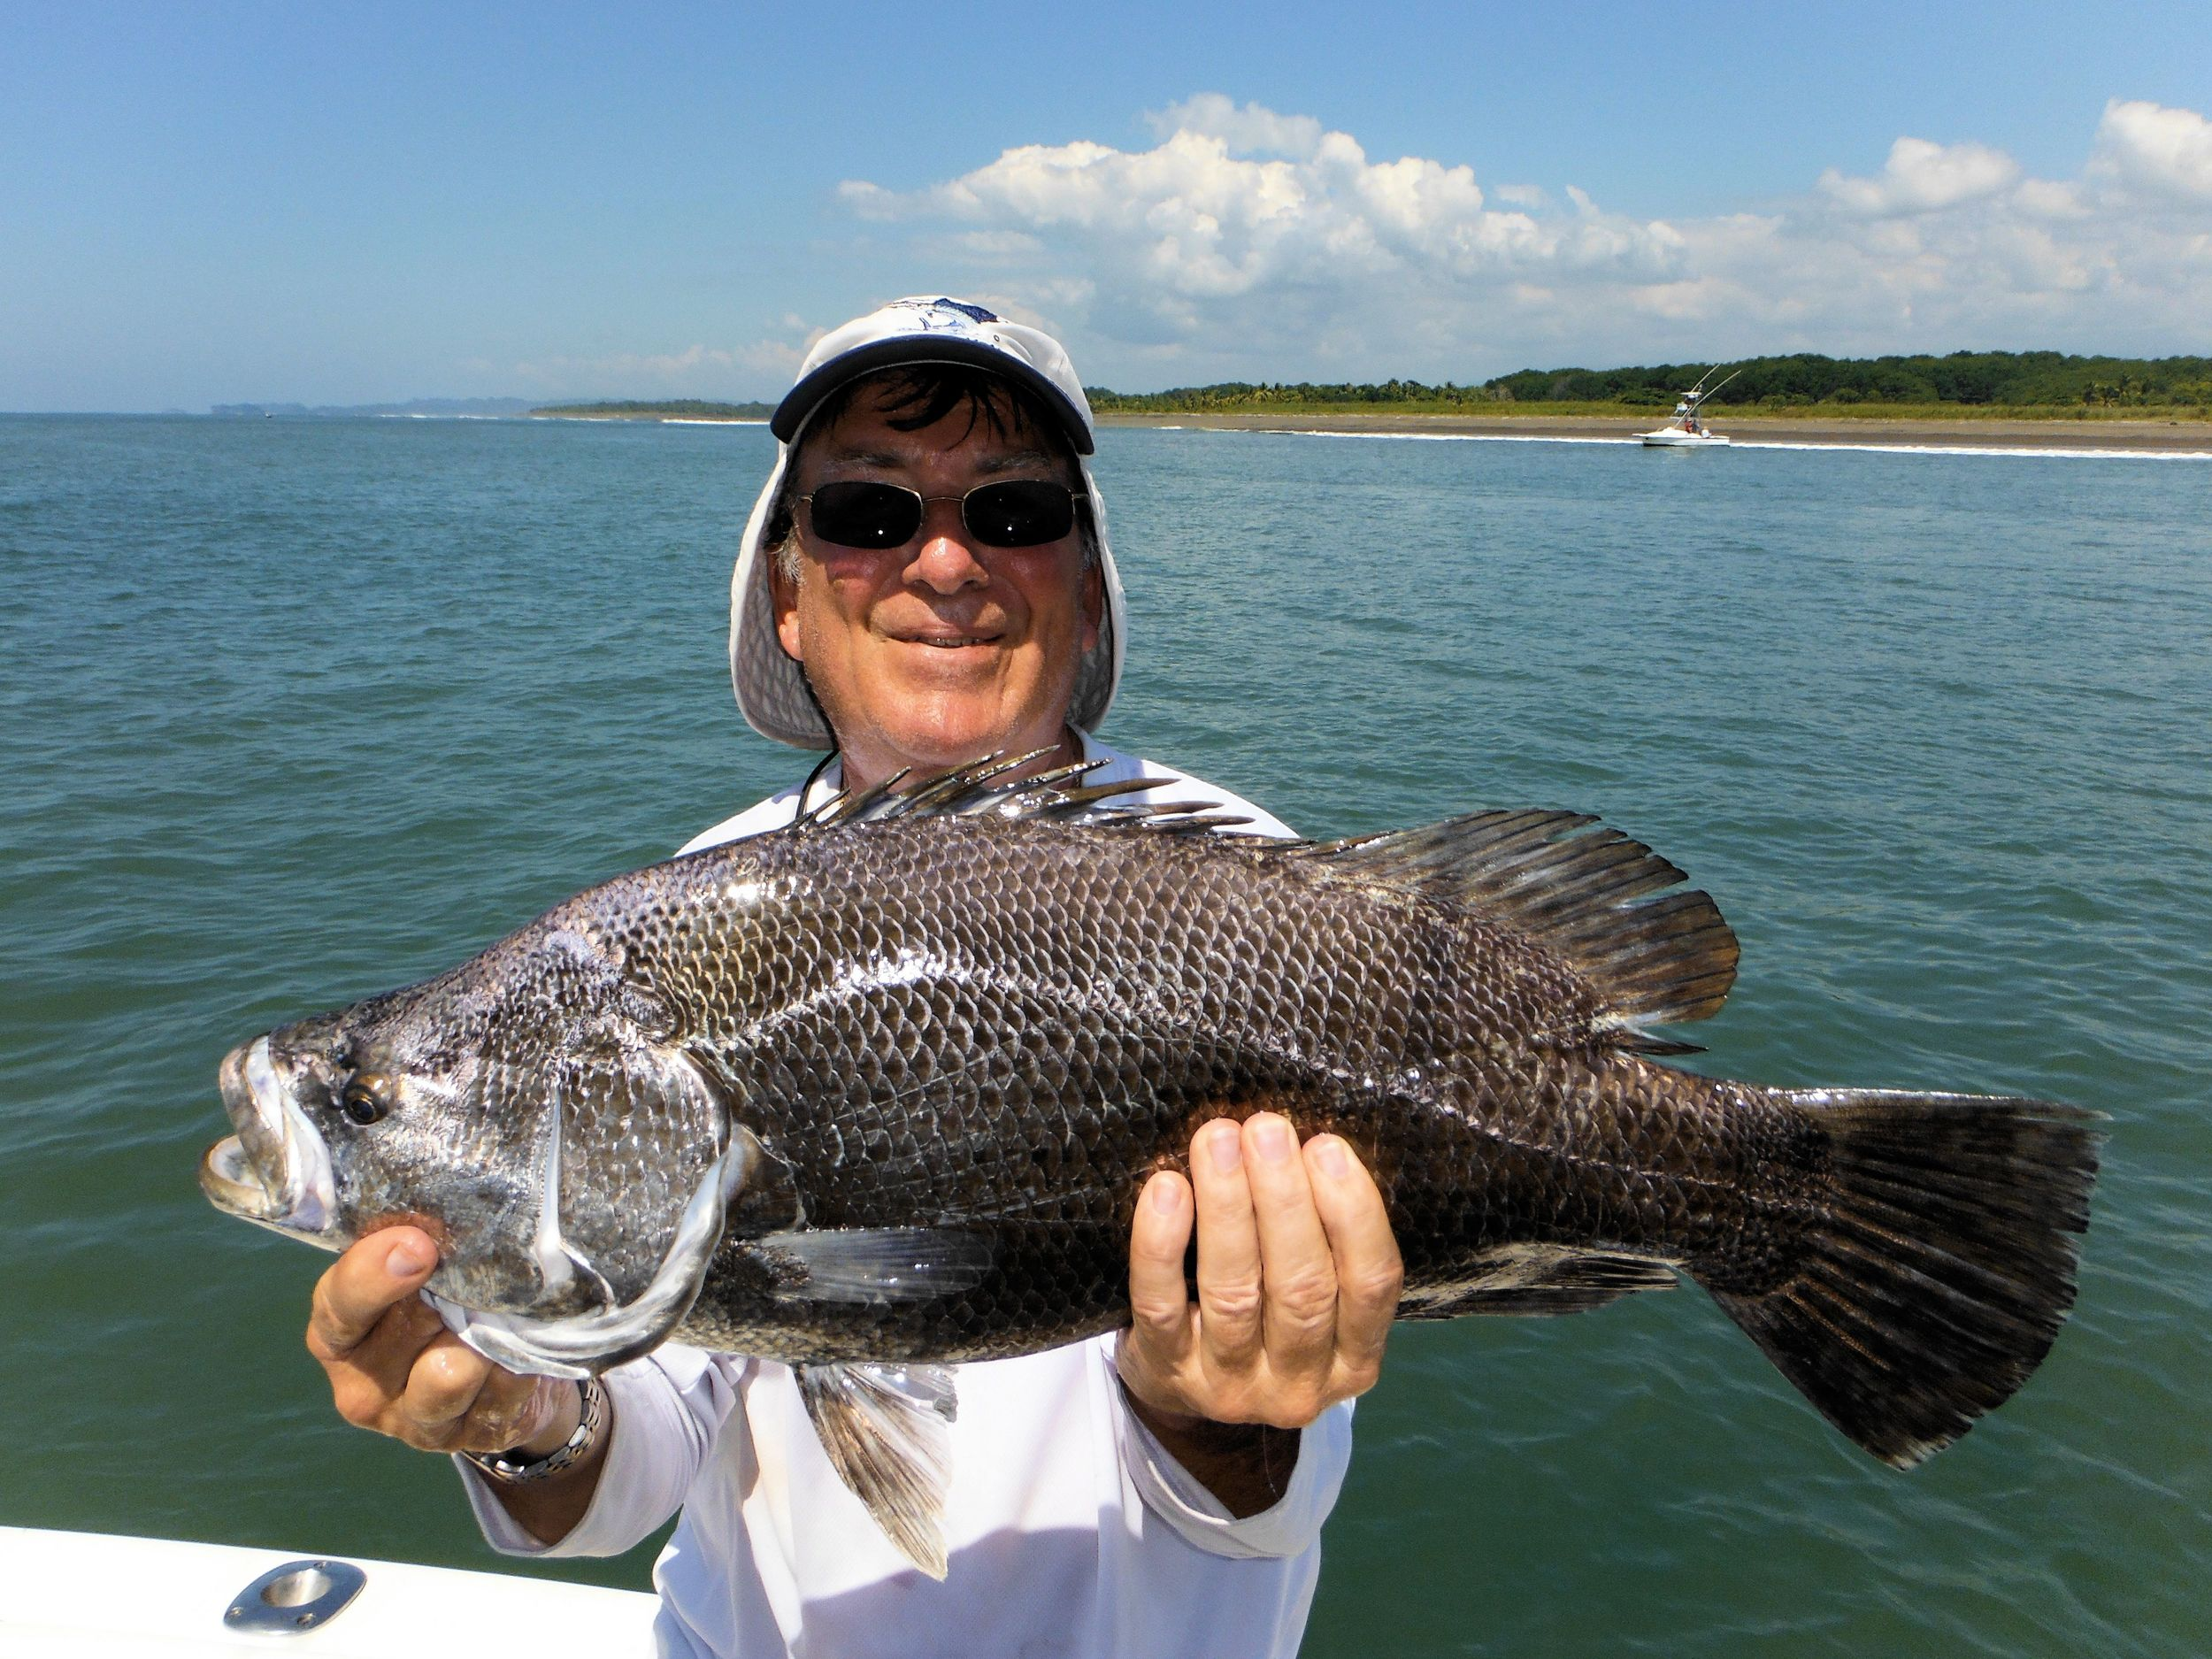 Jerry O'Reilly with a triple tail   Yummy!